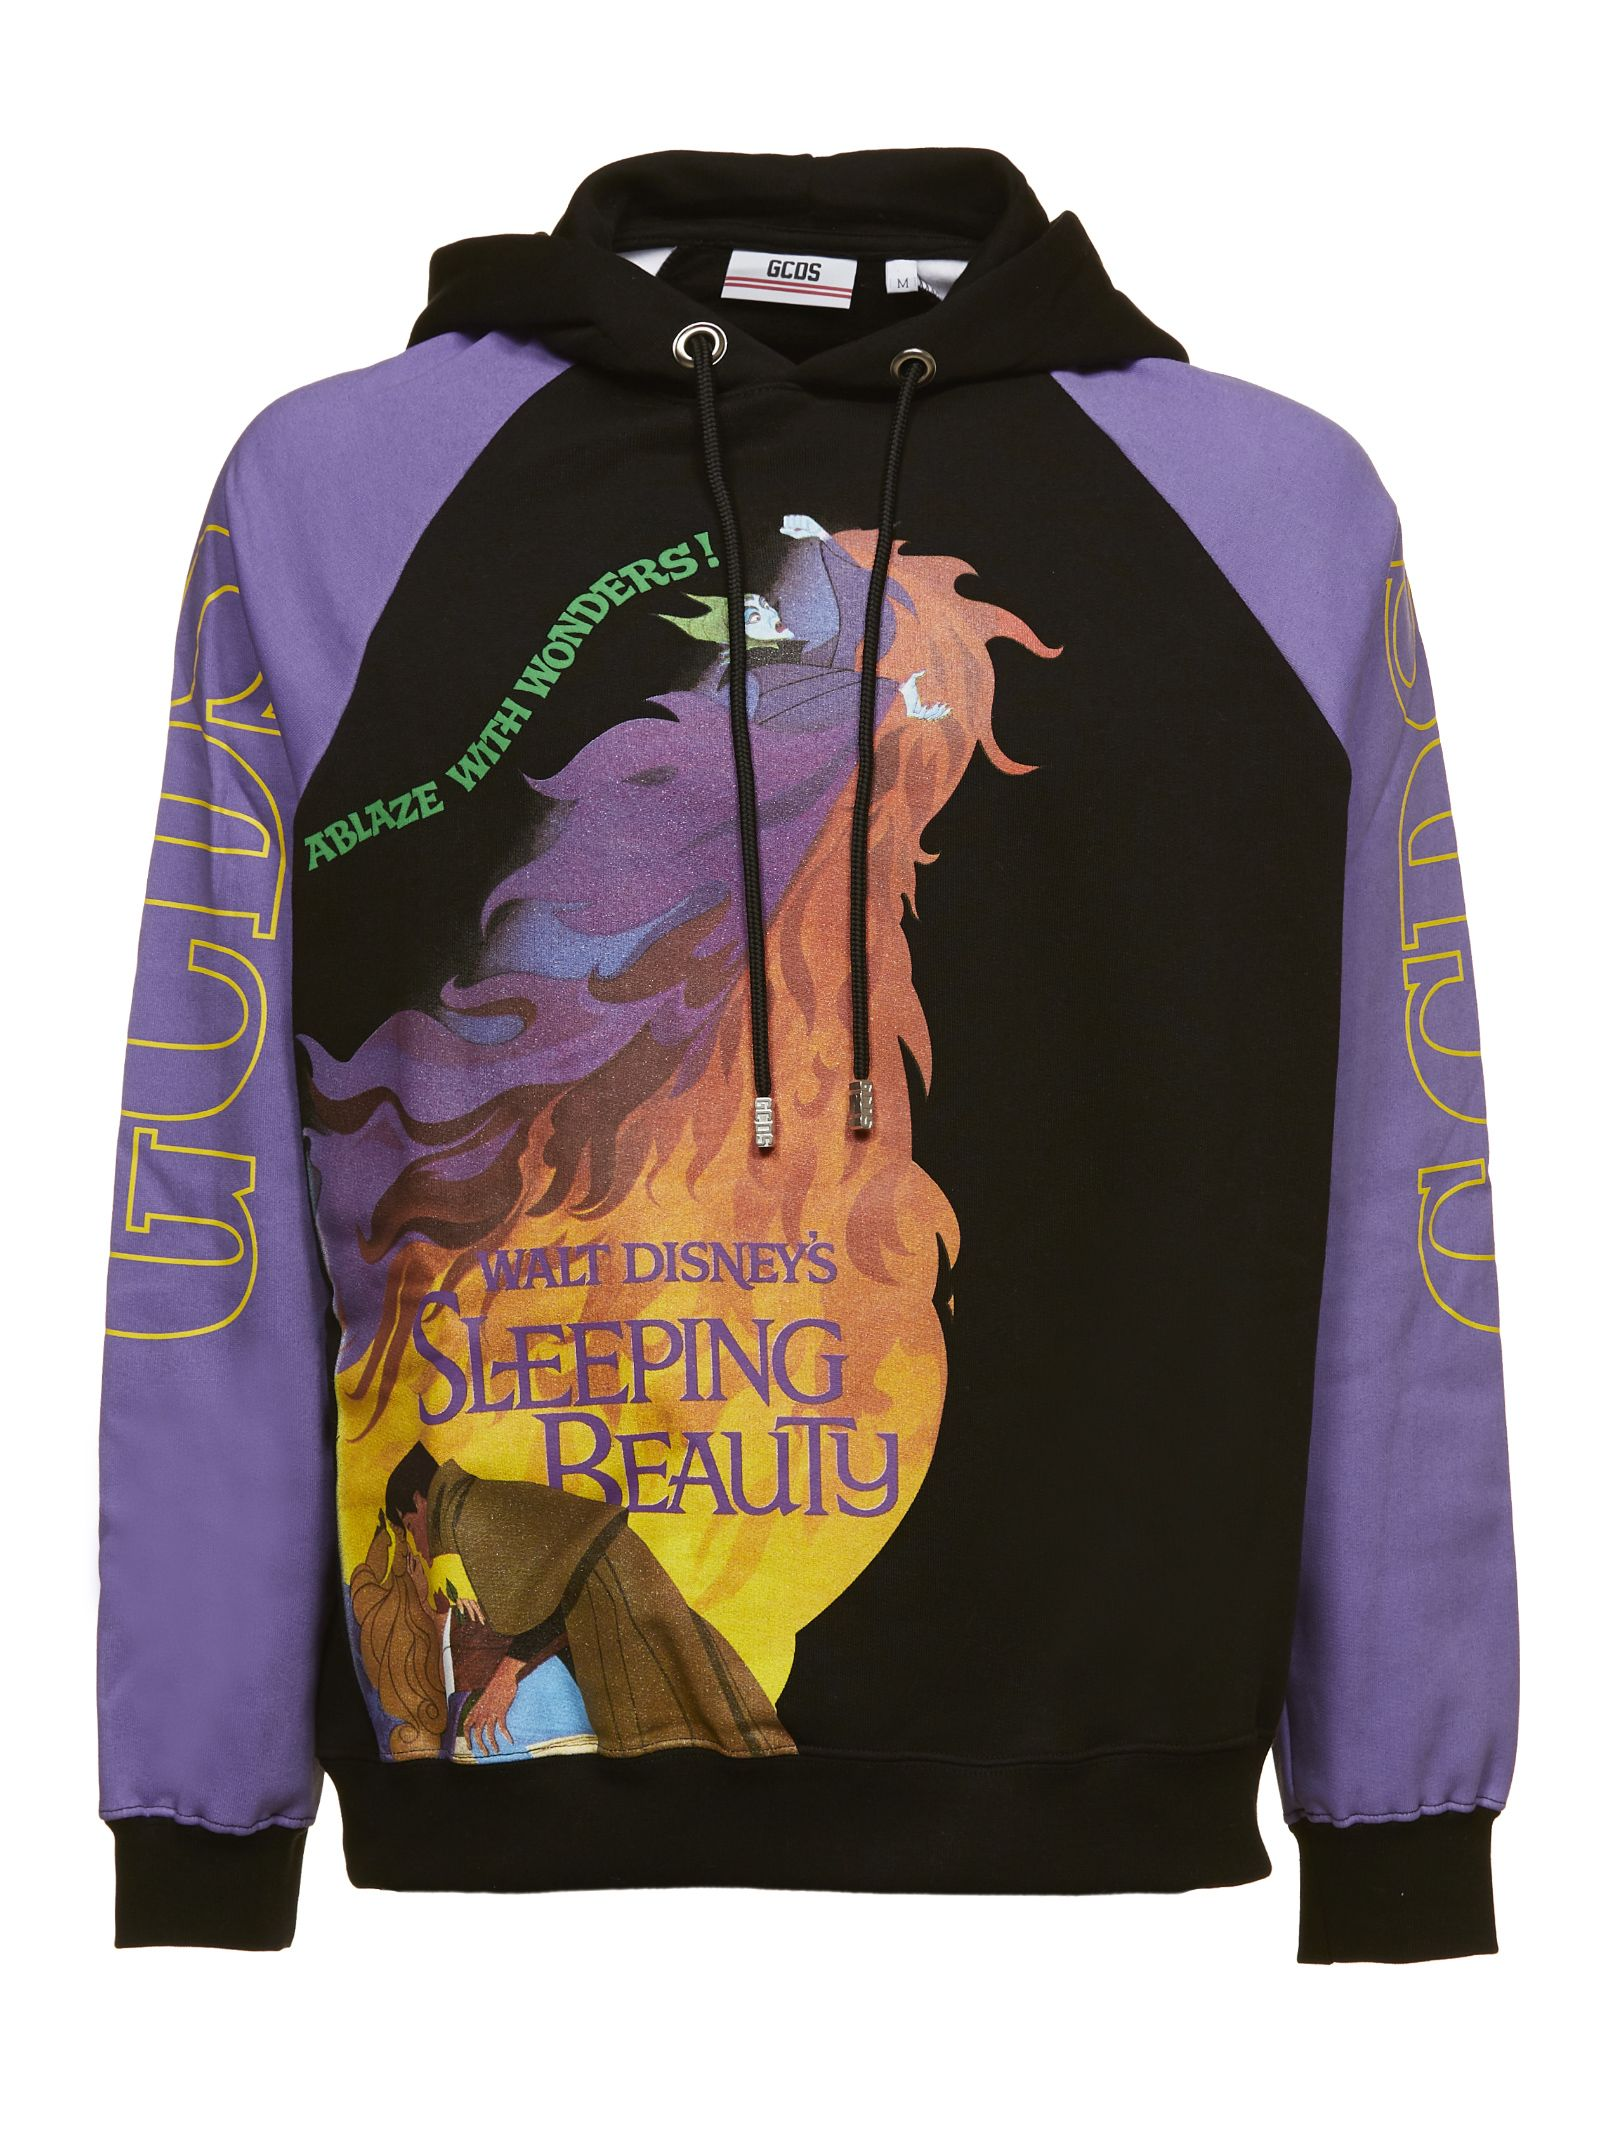 GCDS Sleeping Beauty Hoodie in Black